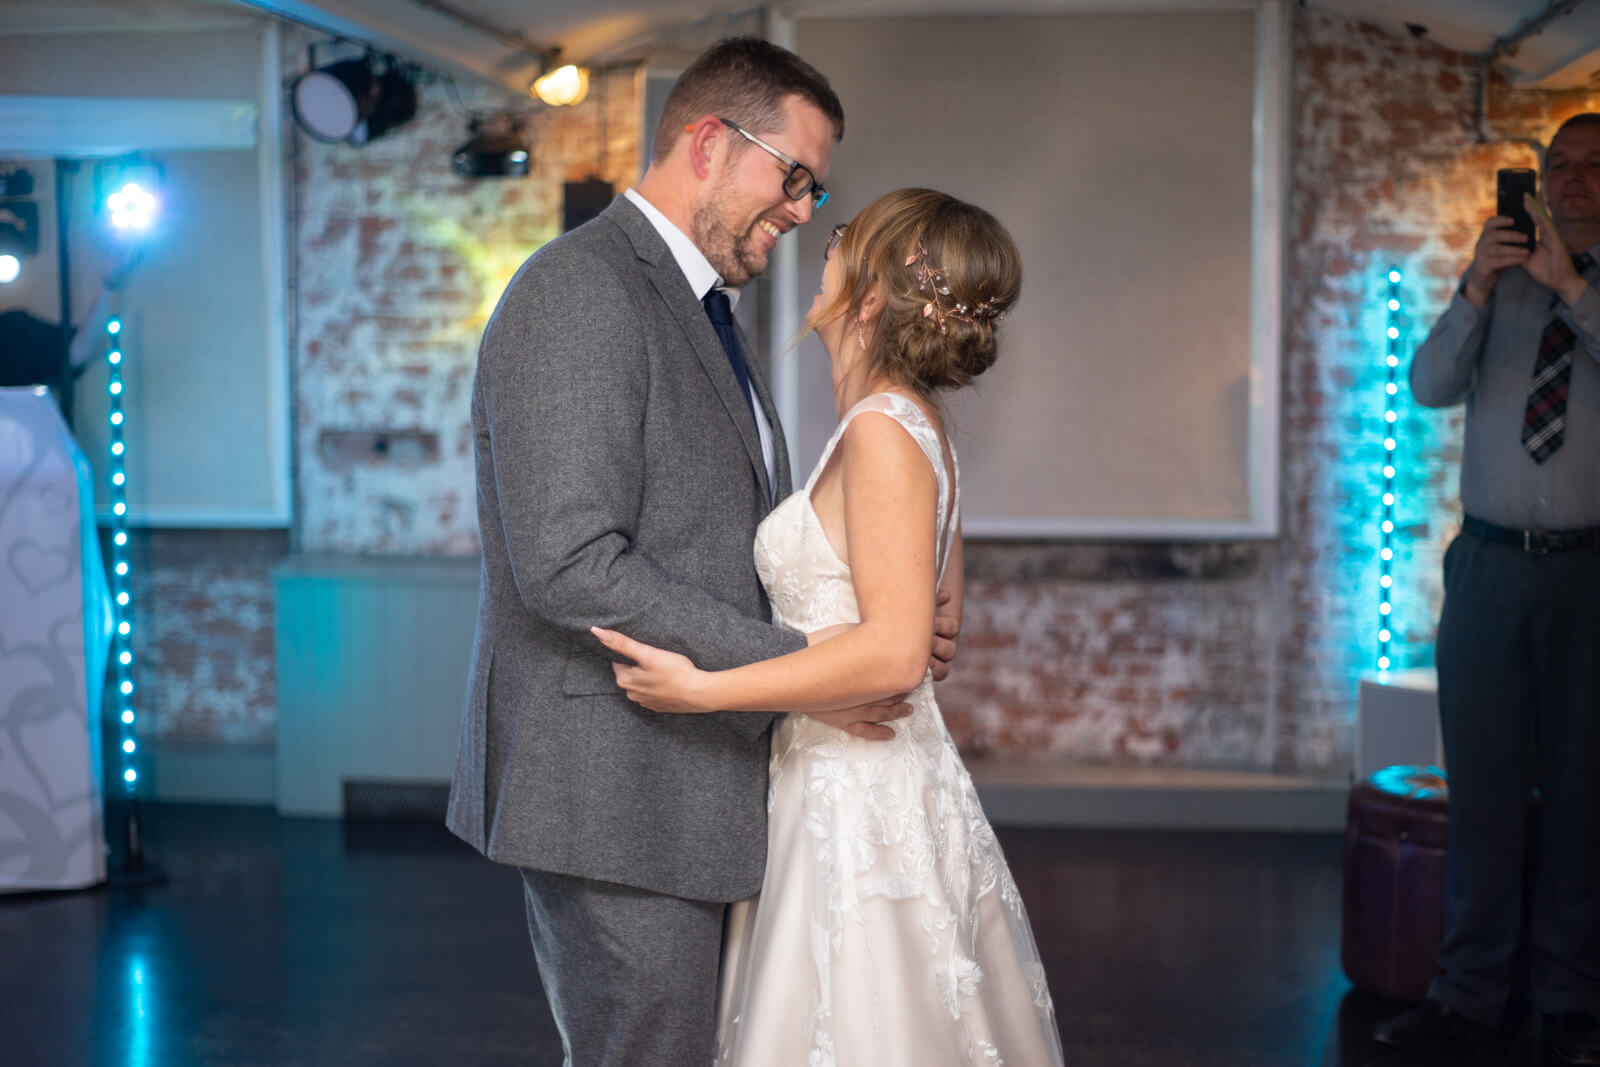 Bride and groom look at each other during their first dance